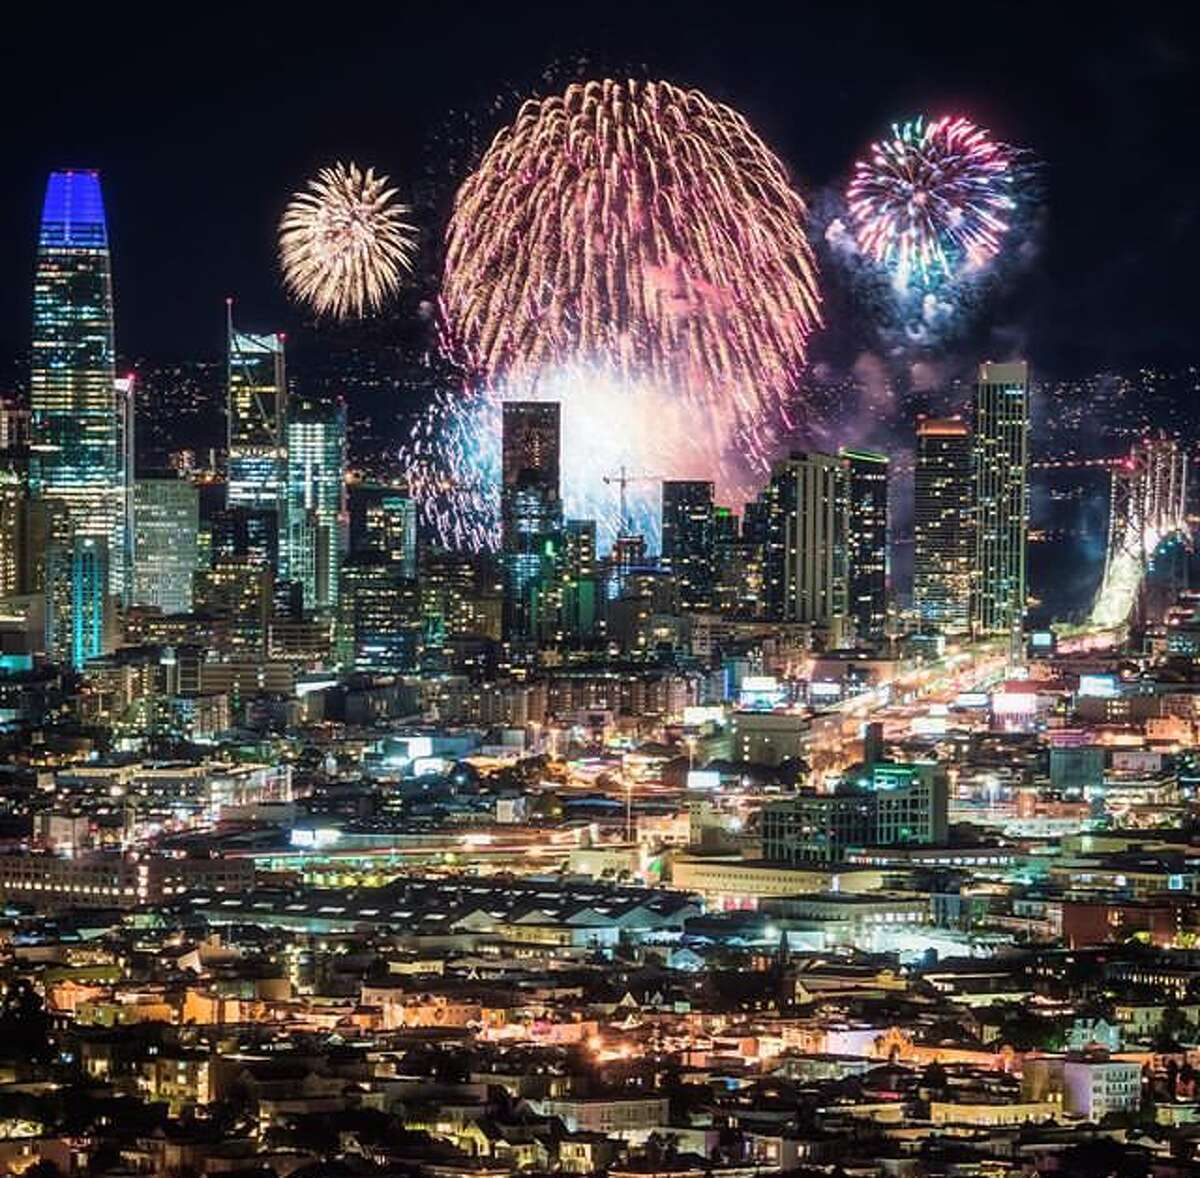 @louisraphael captured the fireworks ringing in 2019 over San Francisco.